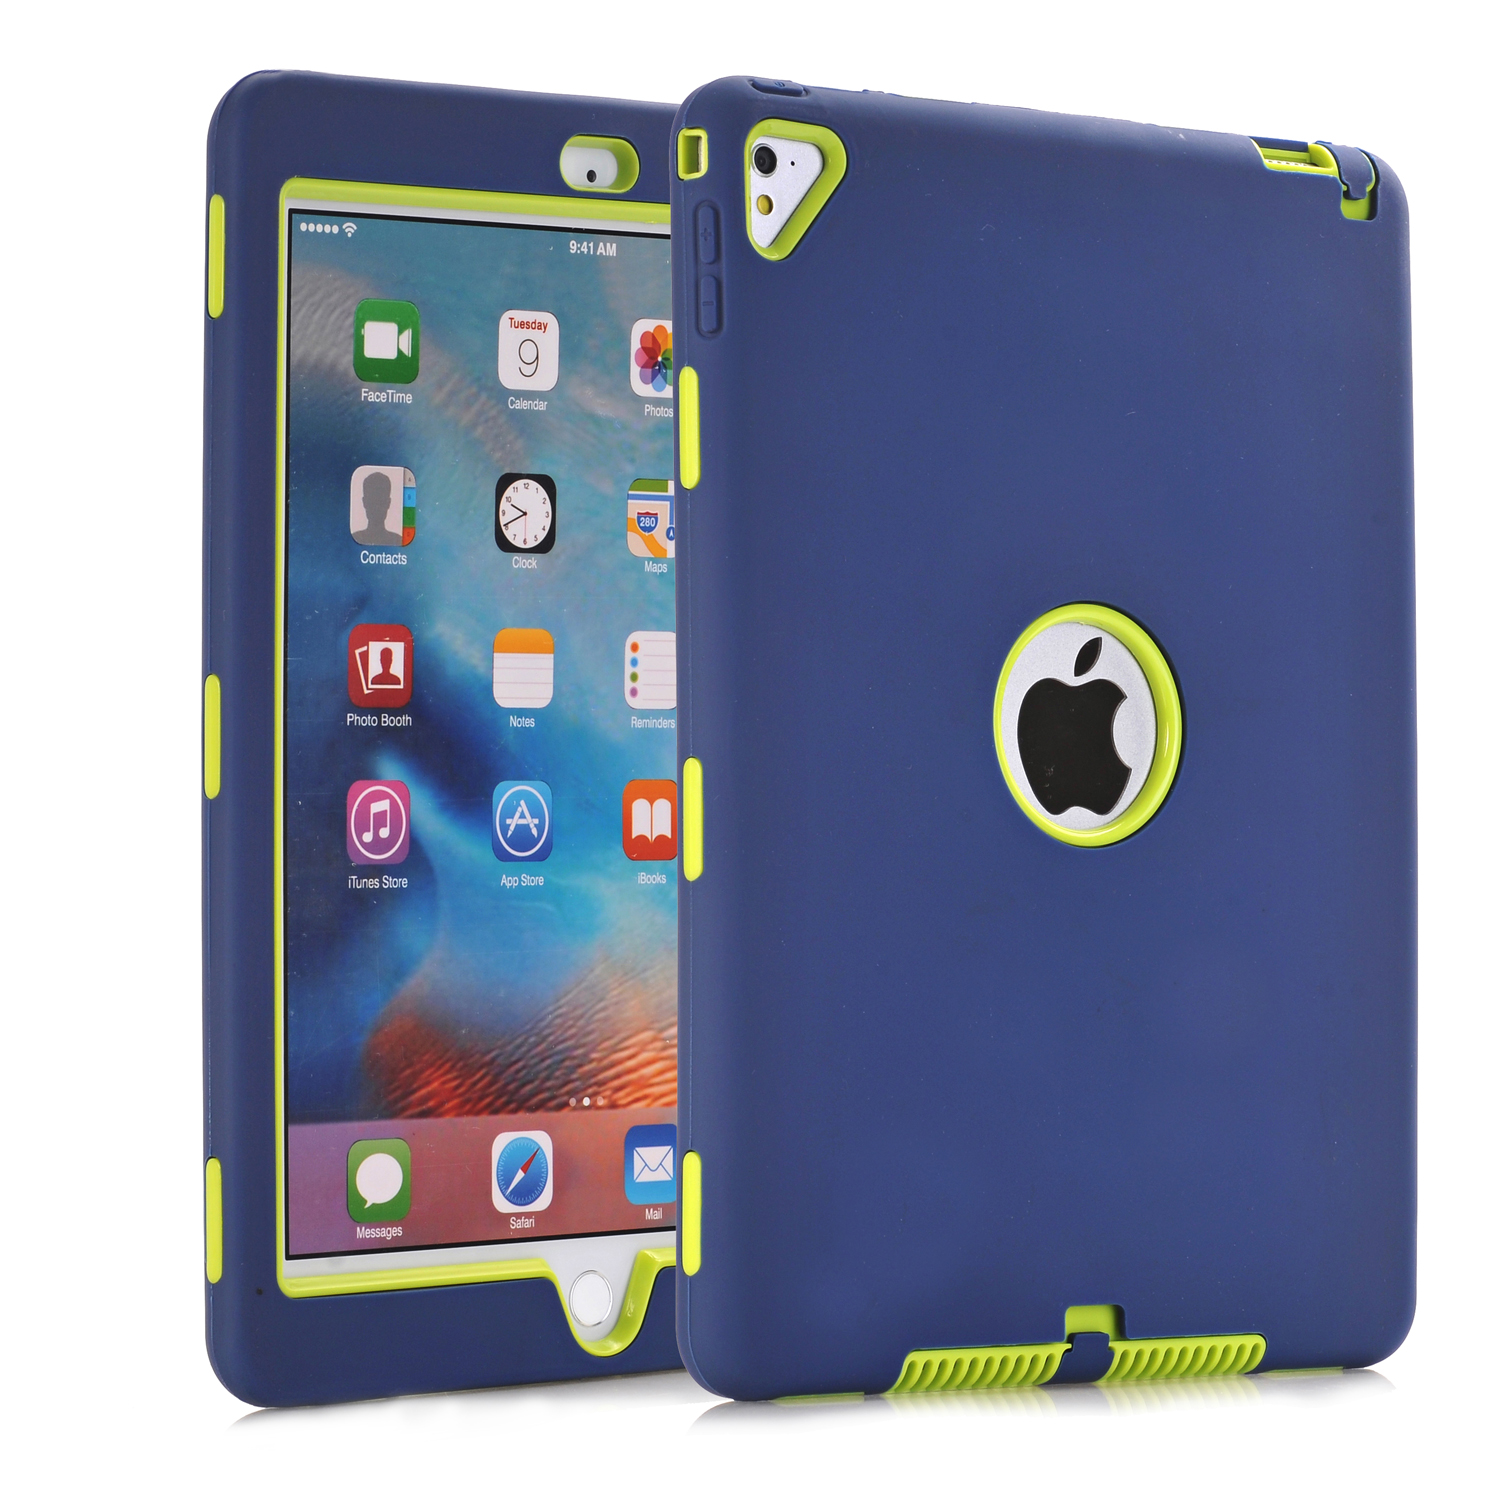 ipad pro 9.7 silicone case review